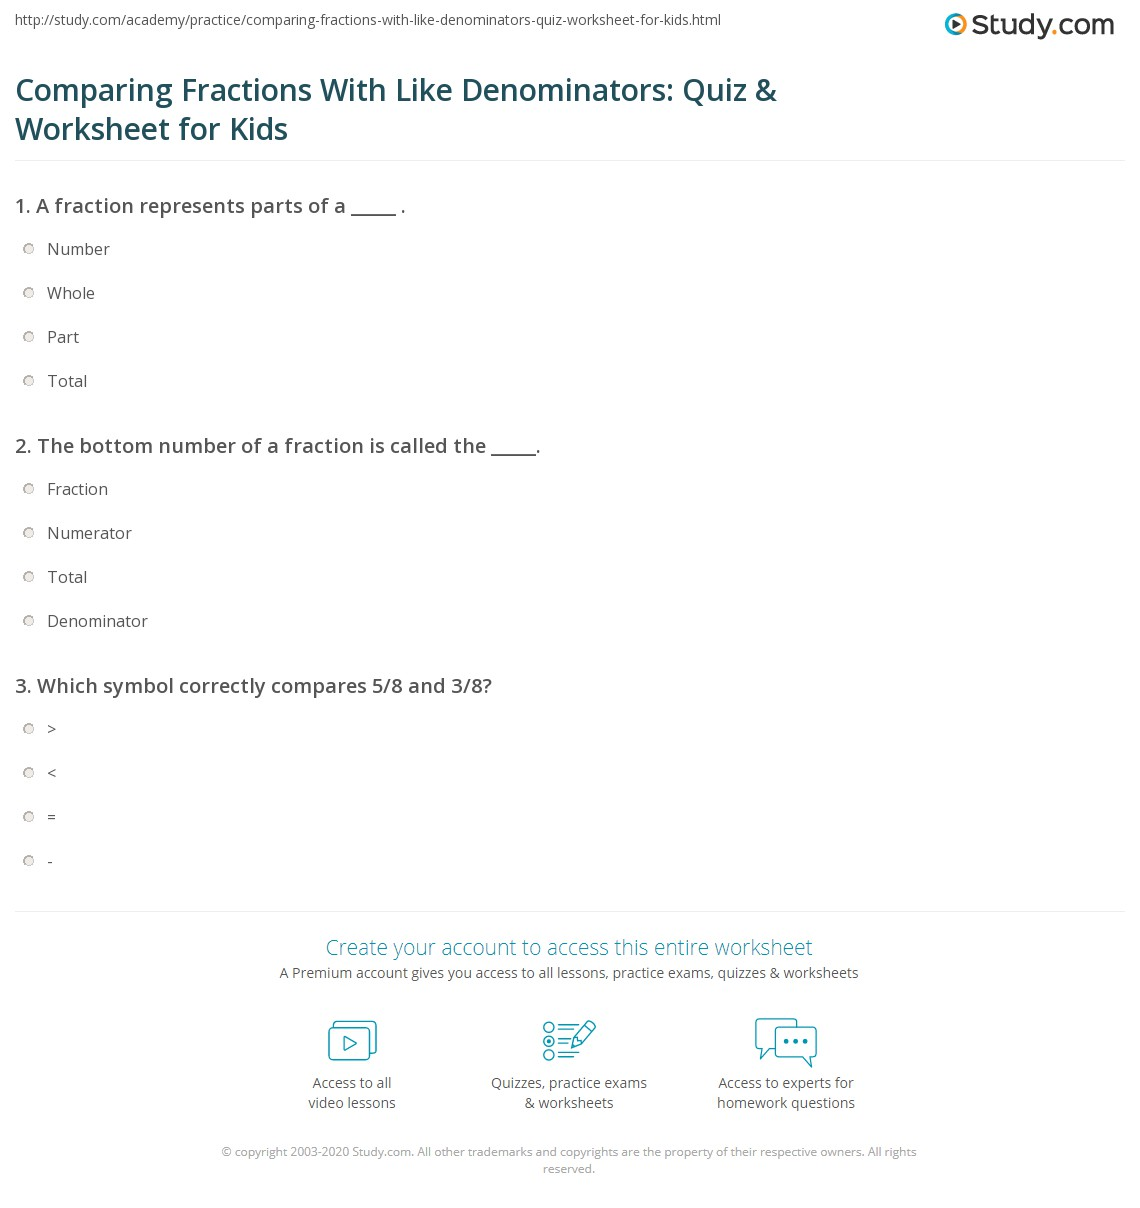 Comparing Fractions With Like Denominators Quiz Worksheet For